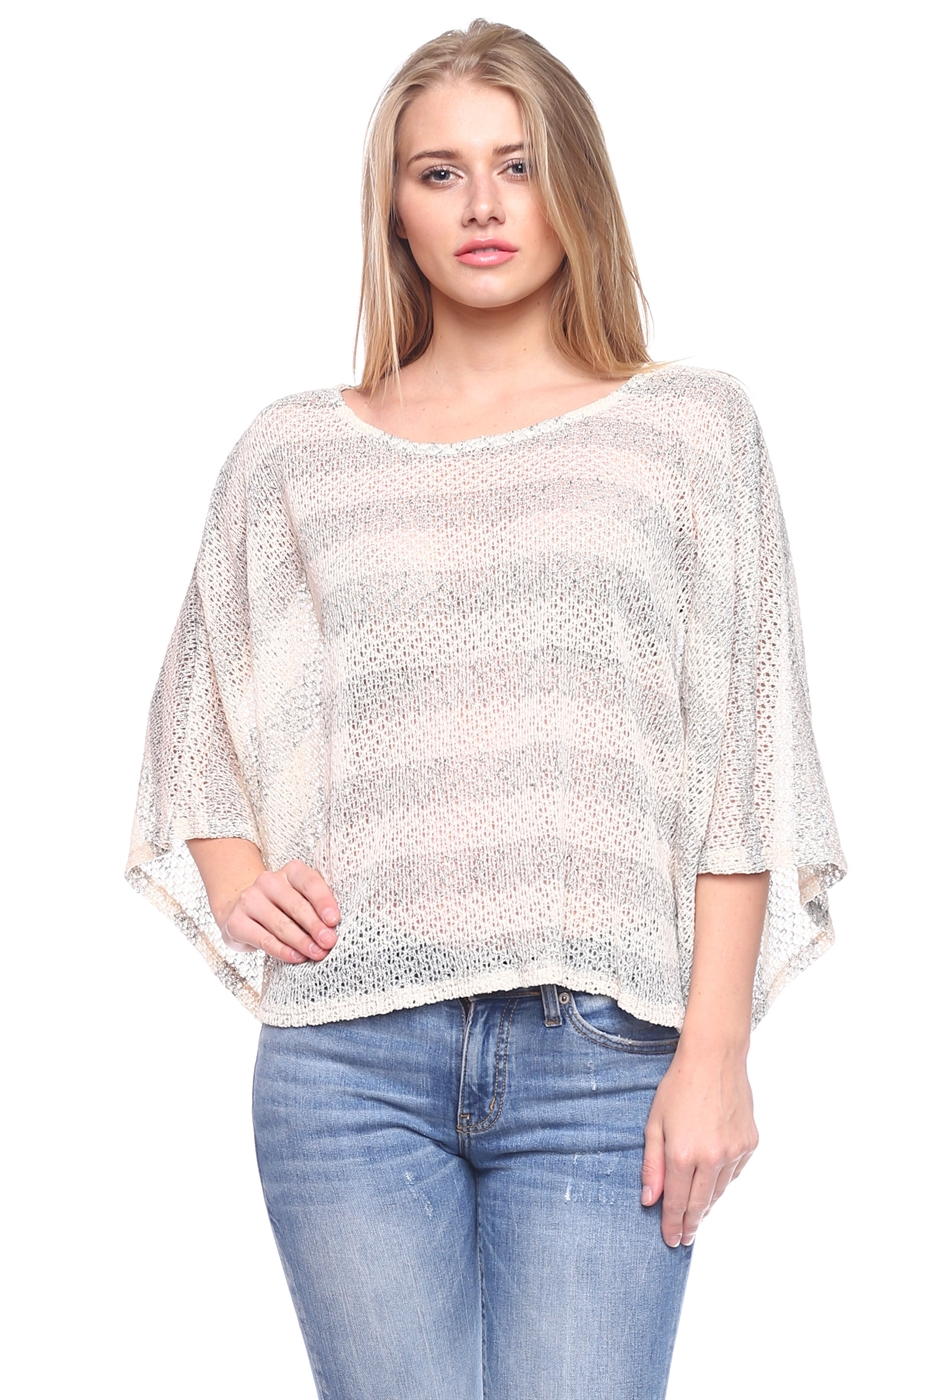 Sheer Dolman Knit Blouse Tops - orangeshine.com